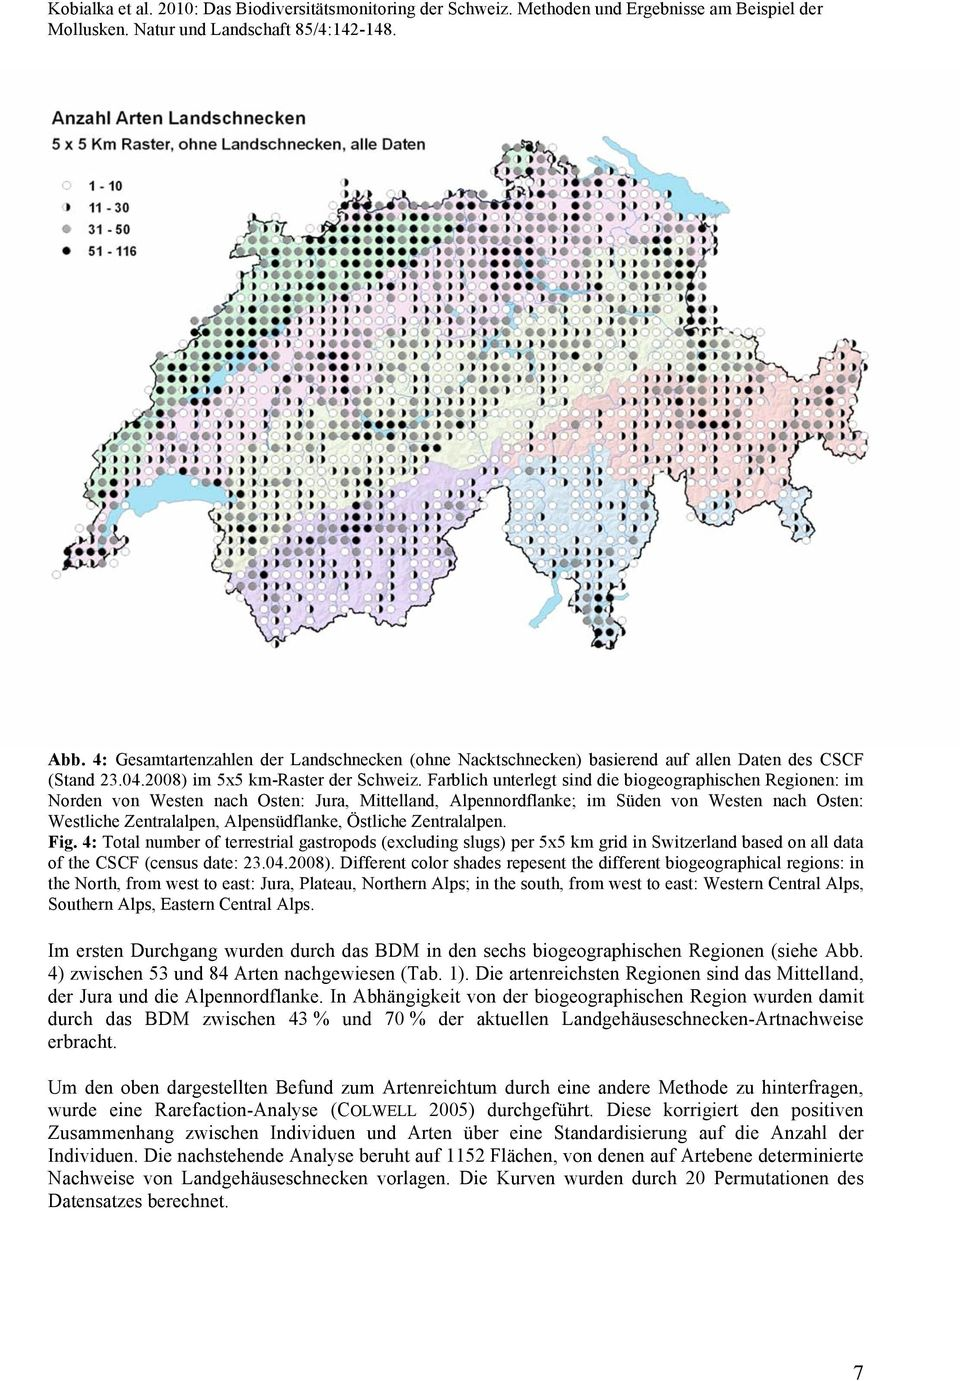 Östliche Zentralalpen. Fig. 4: Total number of terrestrial gastropods (excluding slugs) per 5x5 km grid in Switzerland based on all data of the CSCF (census date: 23.04.2008).